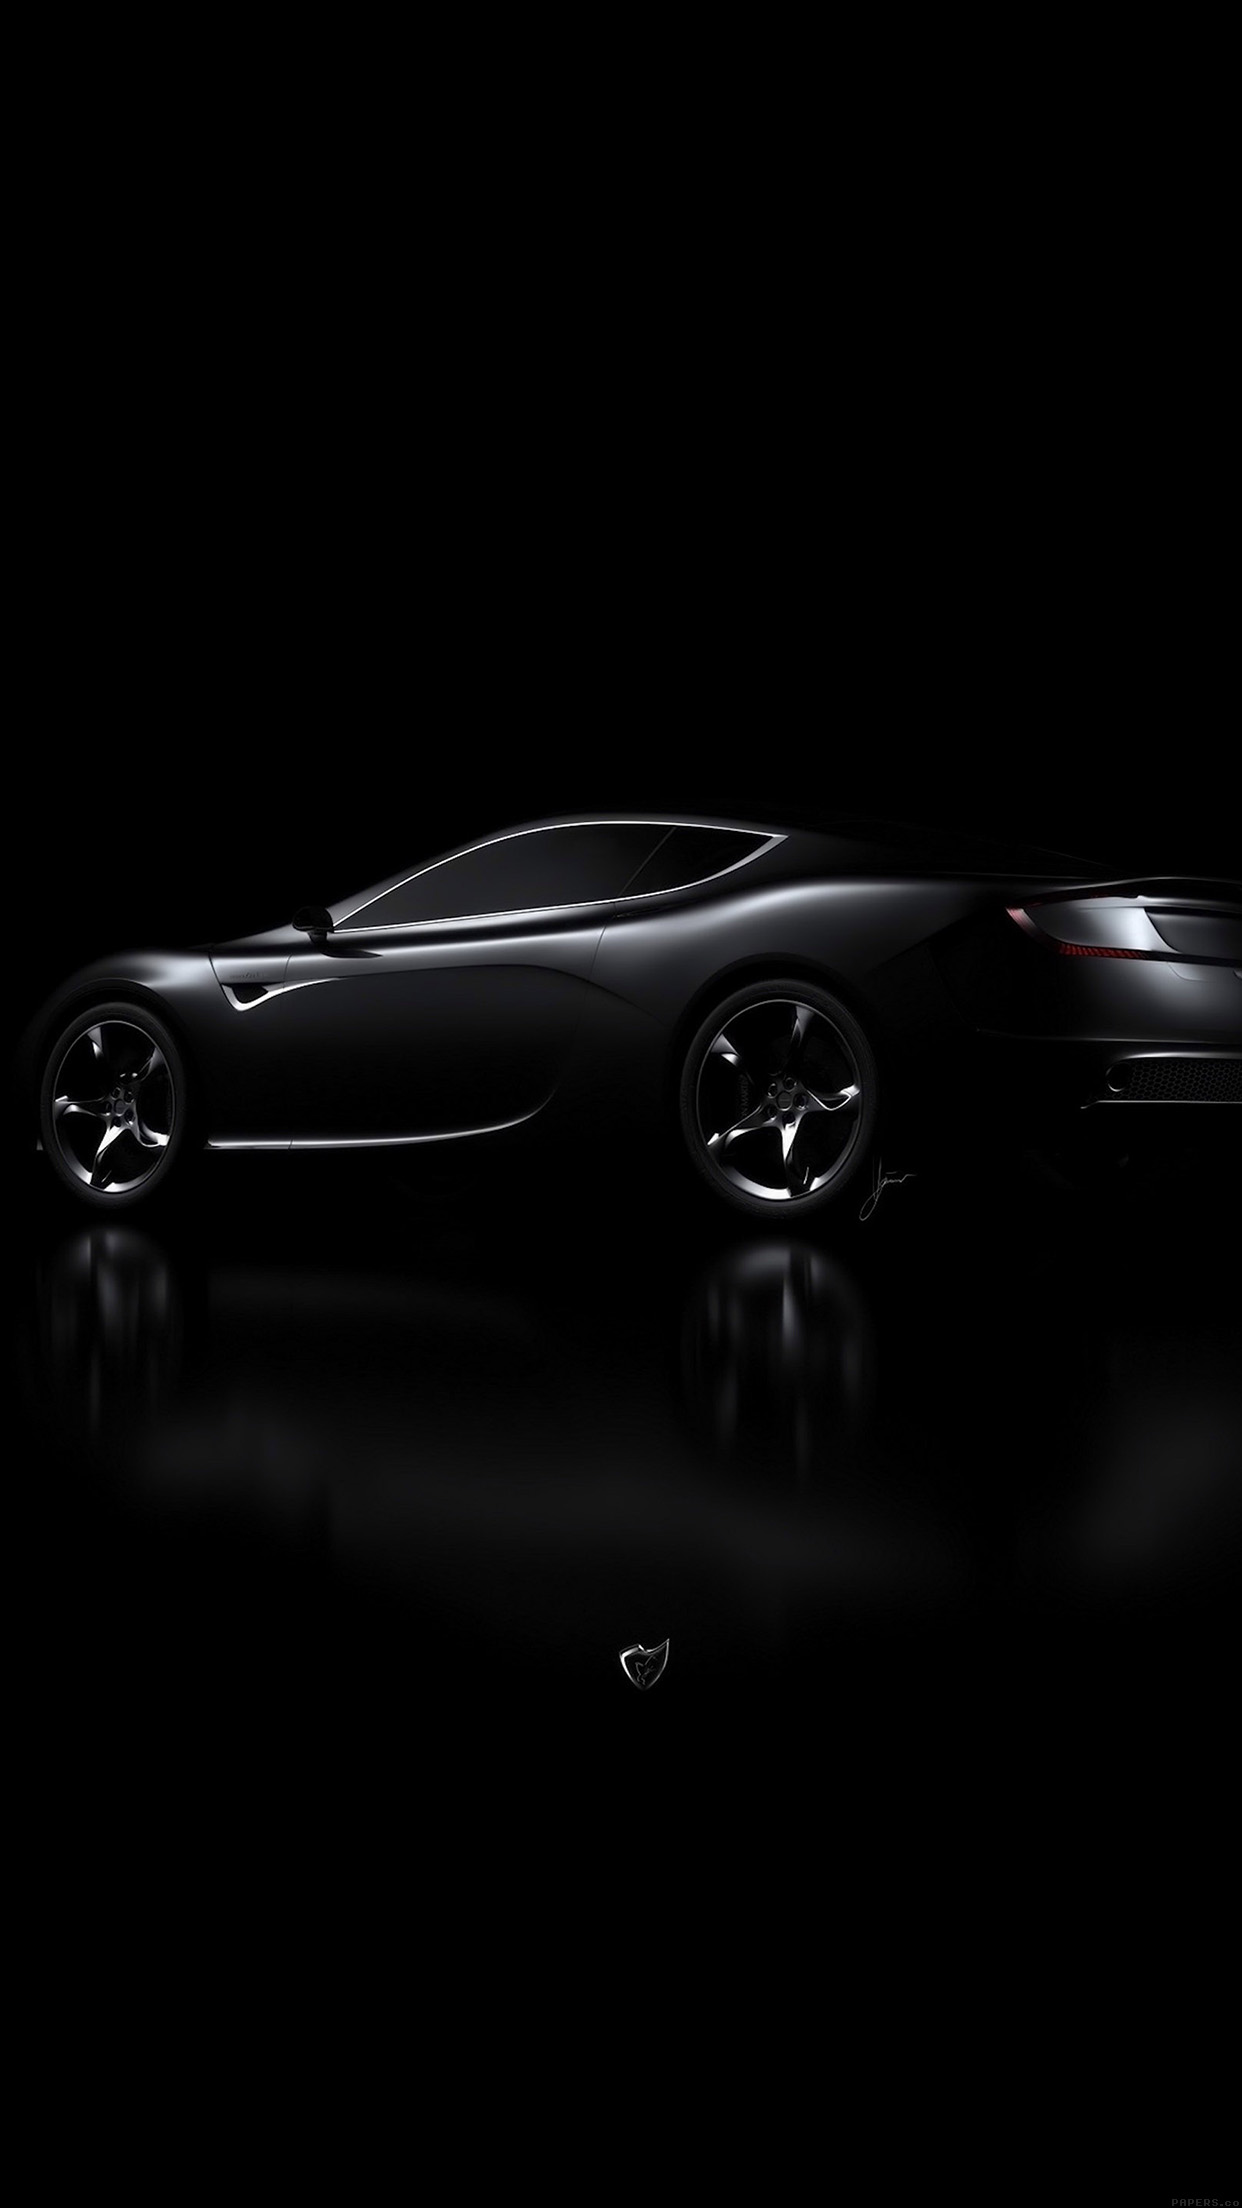 black dark cars - photo #22